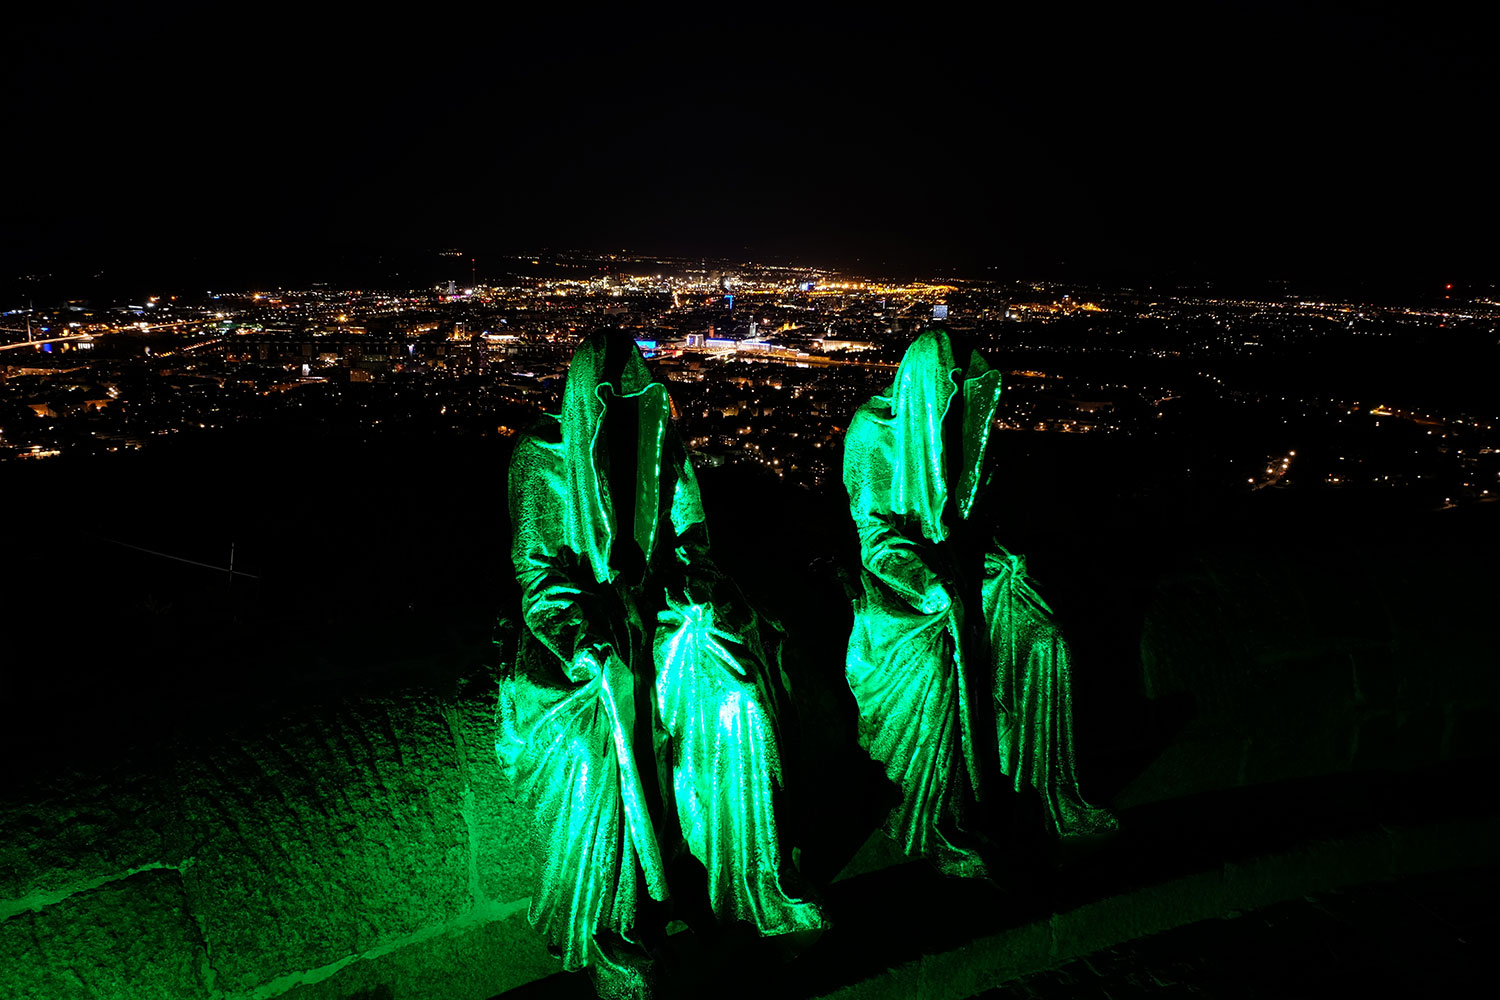 linz-austria-contemporary-art-arts-arte-design-sculpture-statue-guardians-of-time-manfred-kielnhofer-0375y